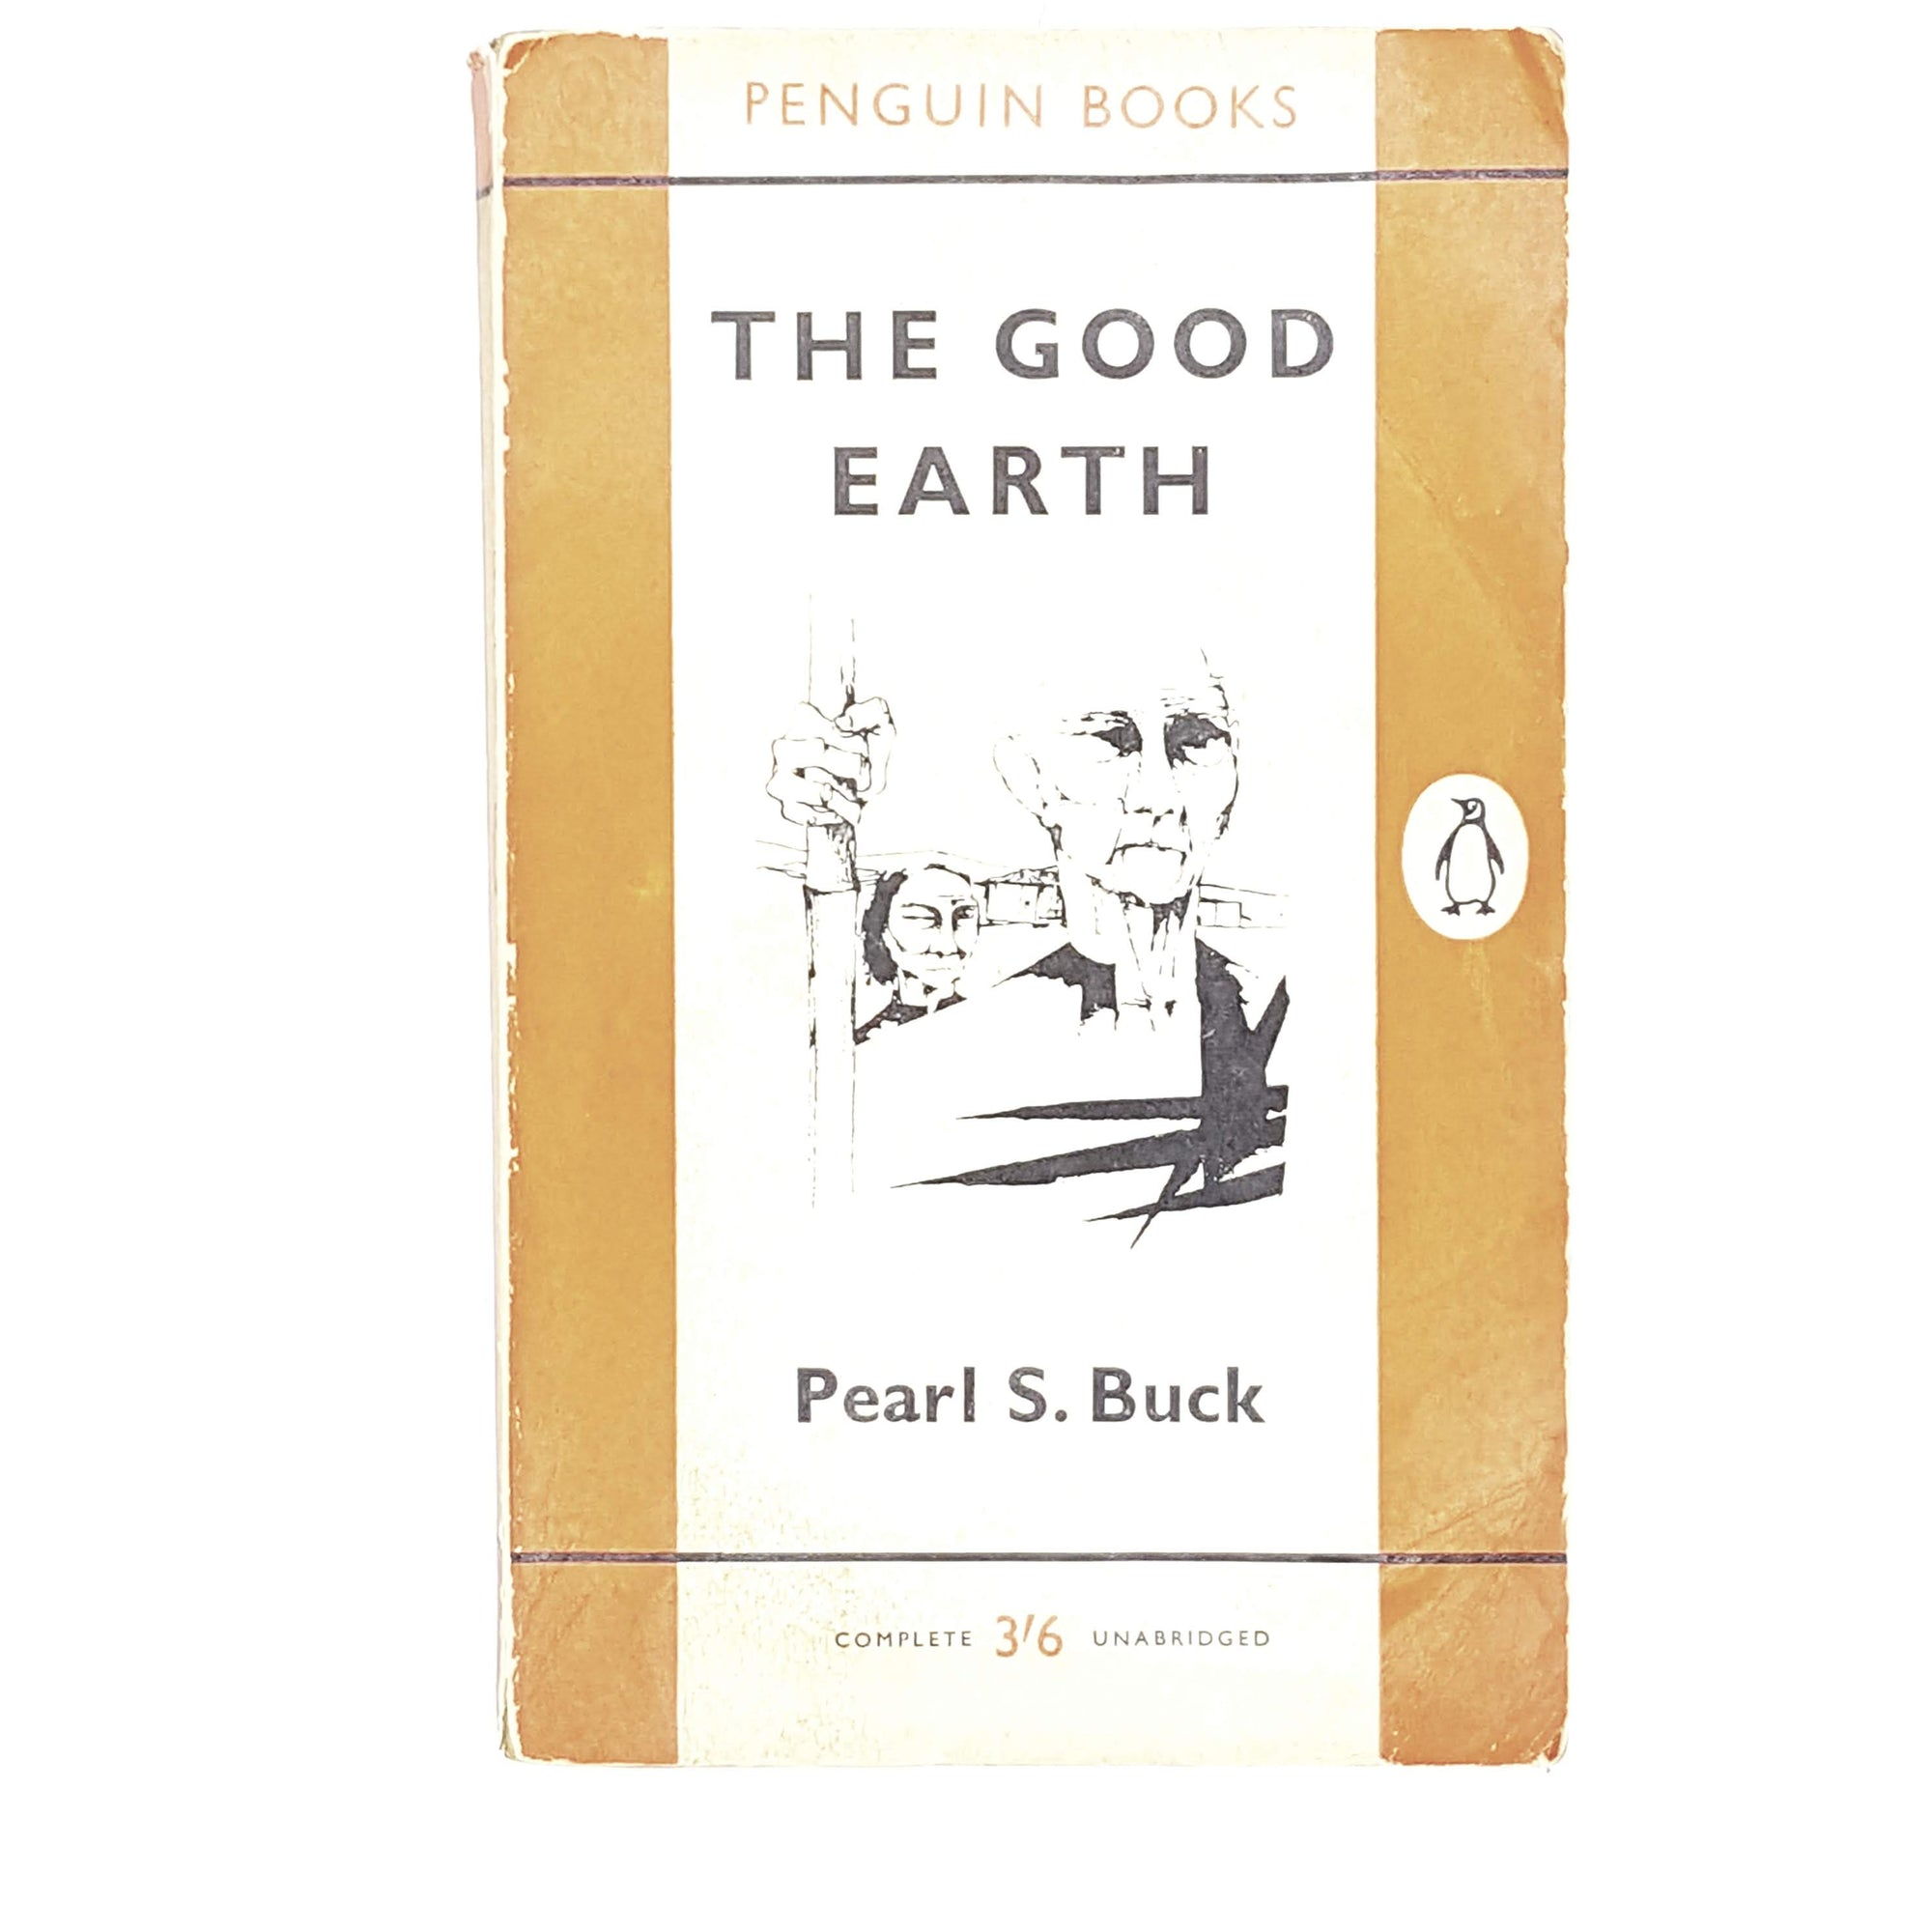 Vintage Penguin The Good Earth by Pearl S. Buck 1960